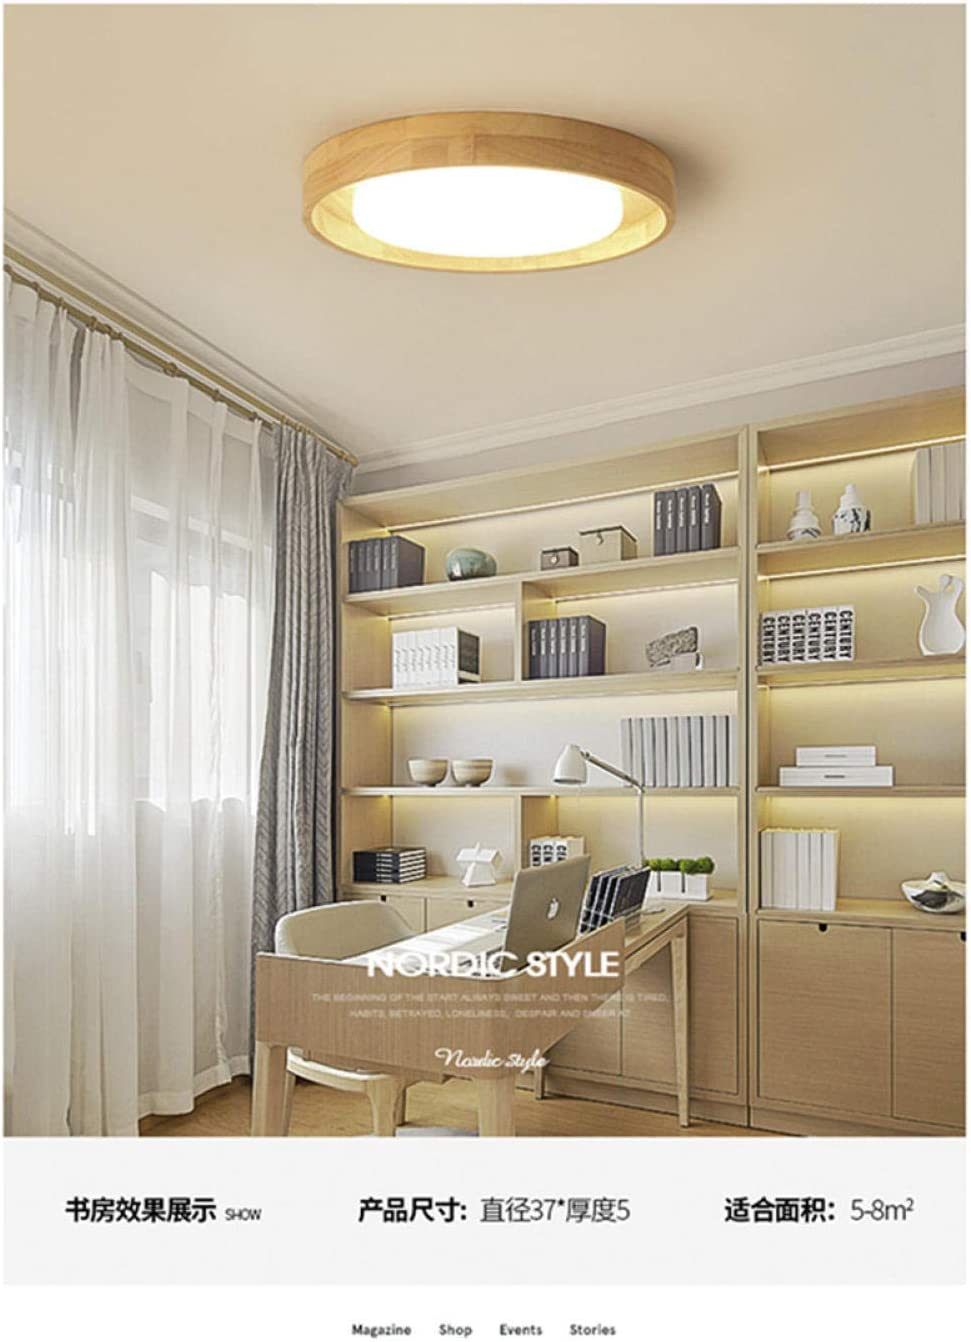 Ceiling Lights Ceiling Lamp Spot Lighting Modern Control Dimmable Led Chandelier Pinewoods Acrylic Lampshade Chrome Led Ceiling Chandelier Luxury Foyer Light-58X5Cm_39W 37x5cm 18w